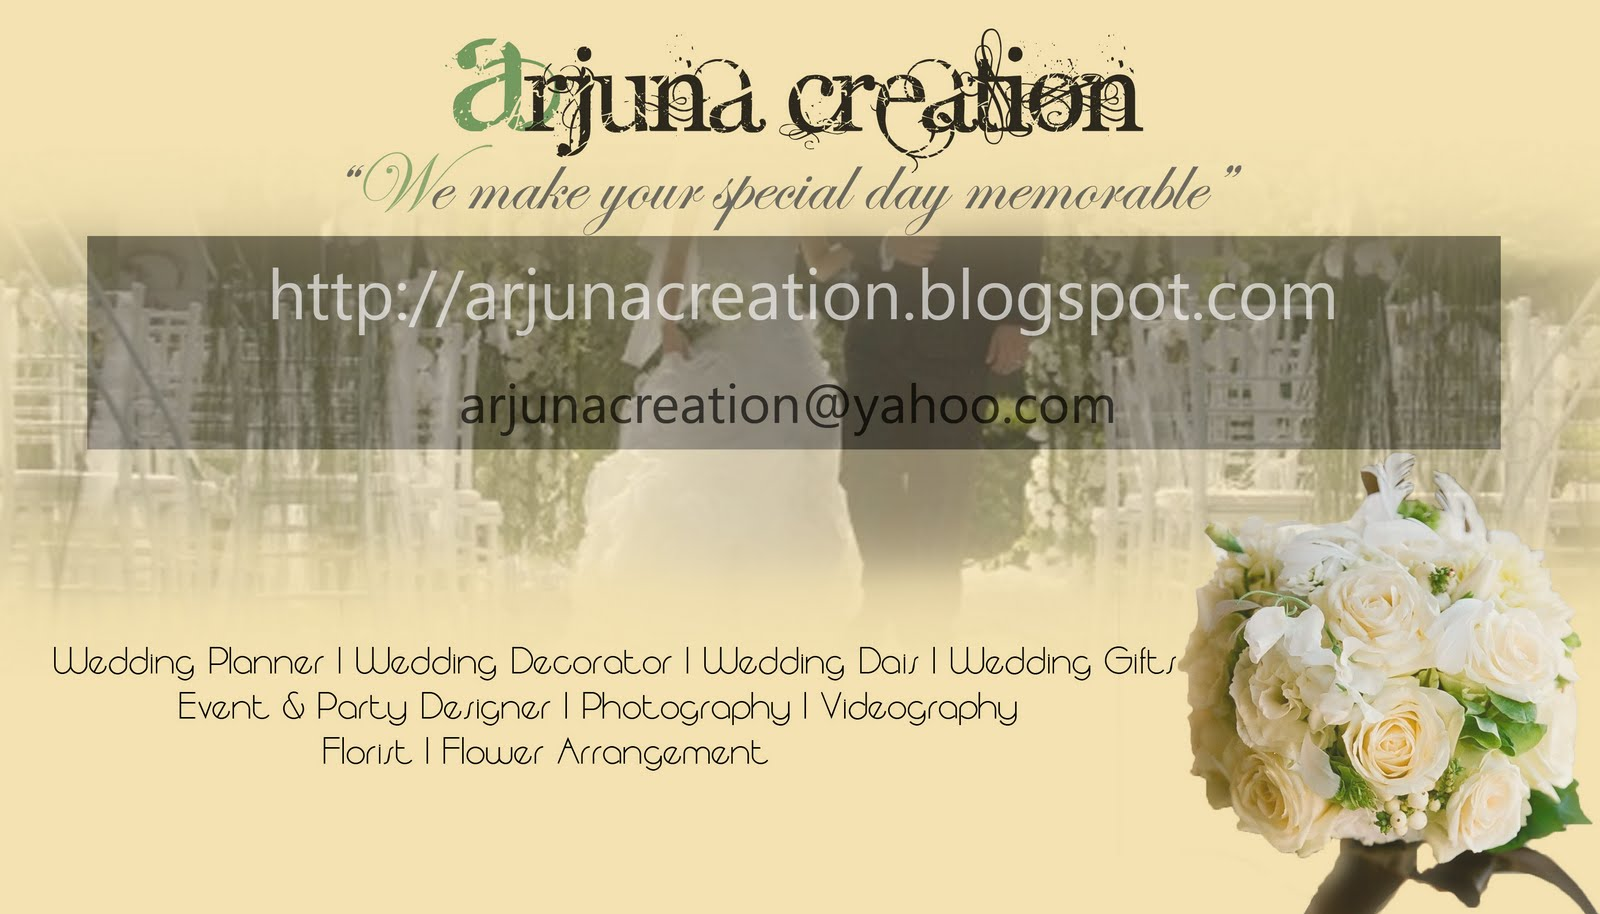 the name of En. keemai: Designing business card for Arjuna Creation